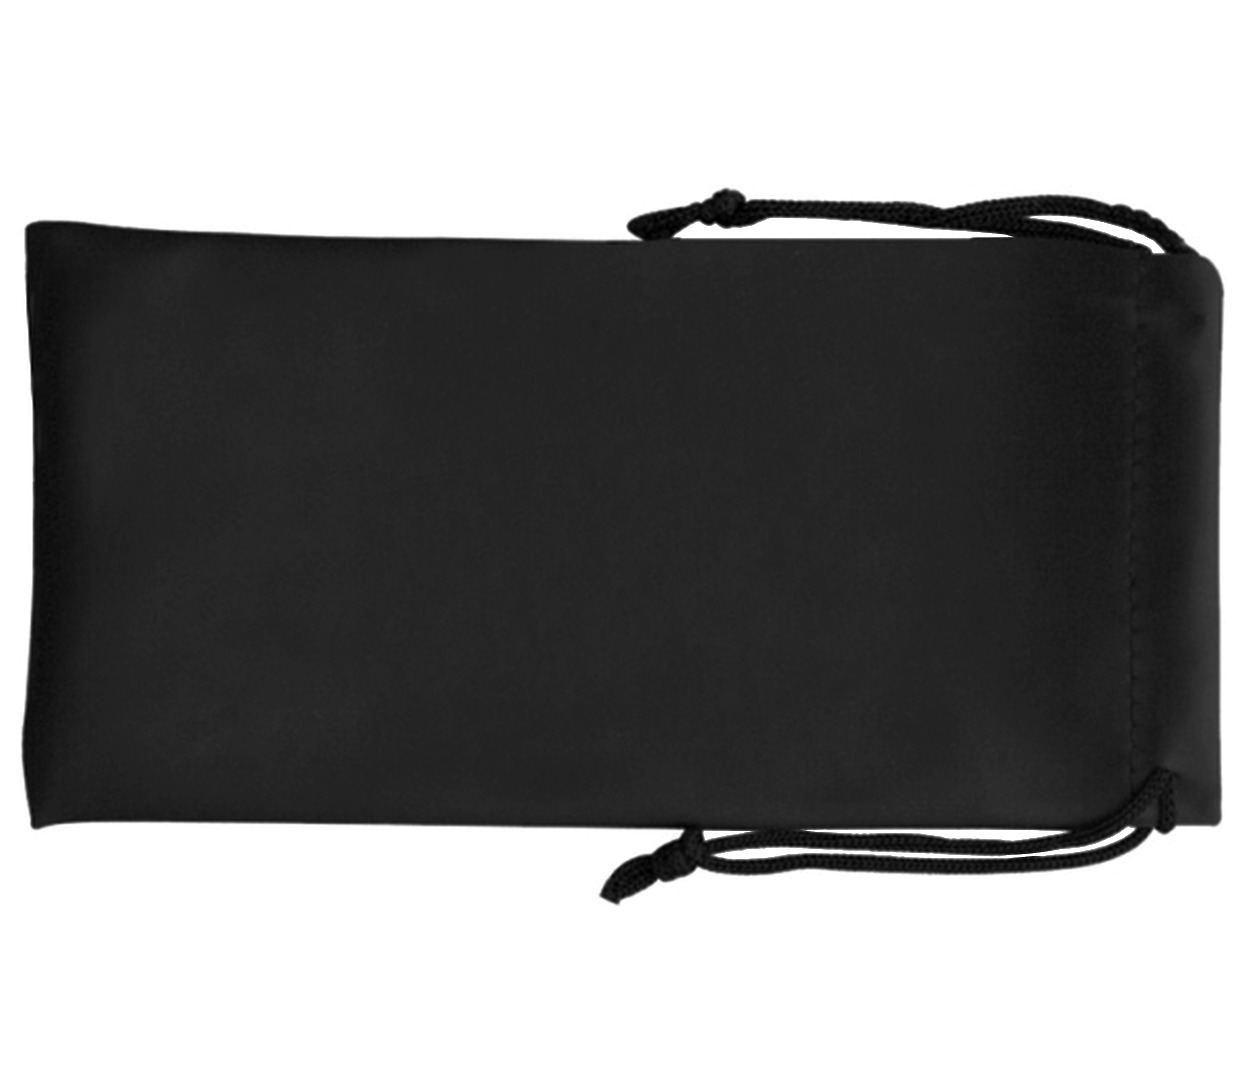 Case - Newhaven (Black)